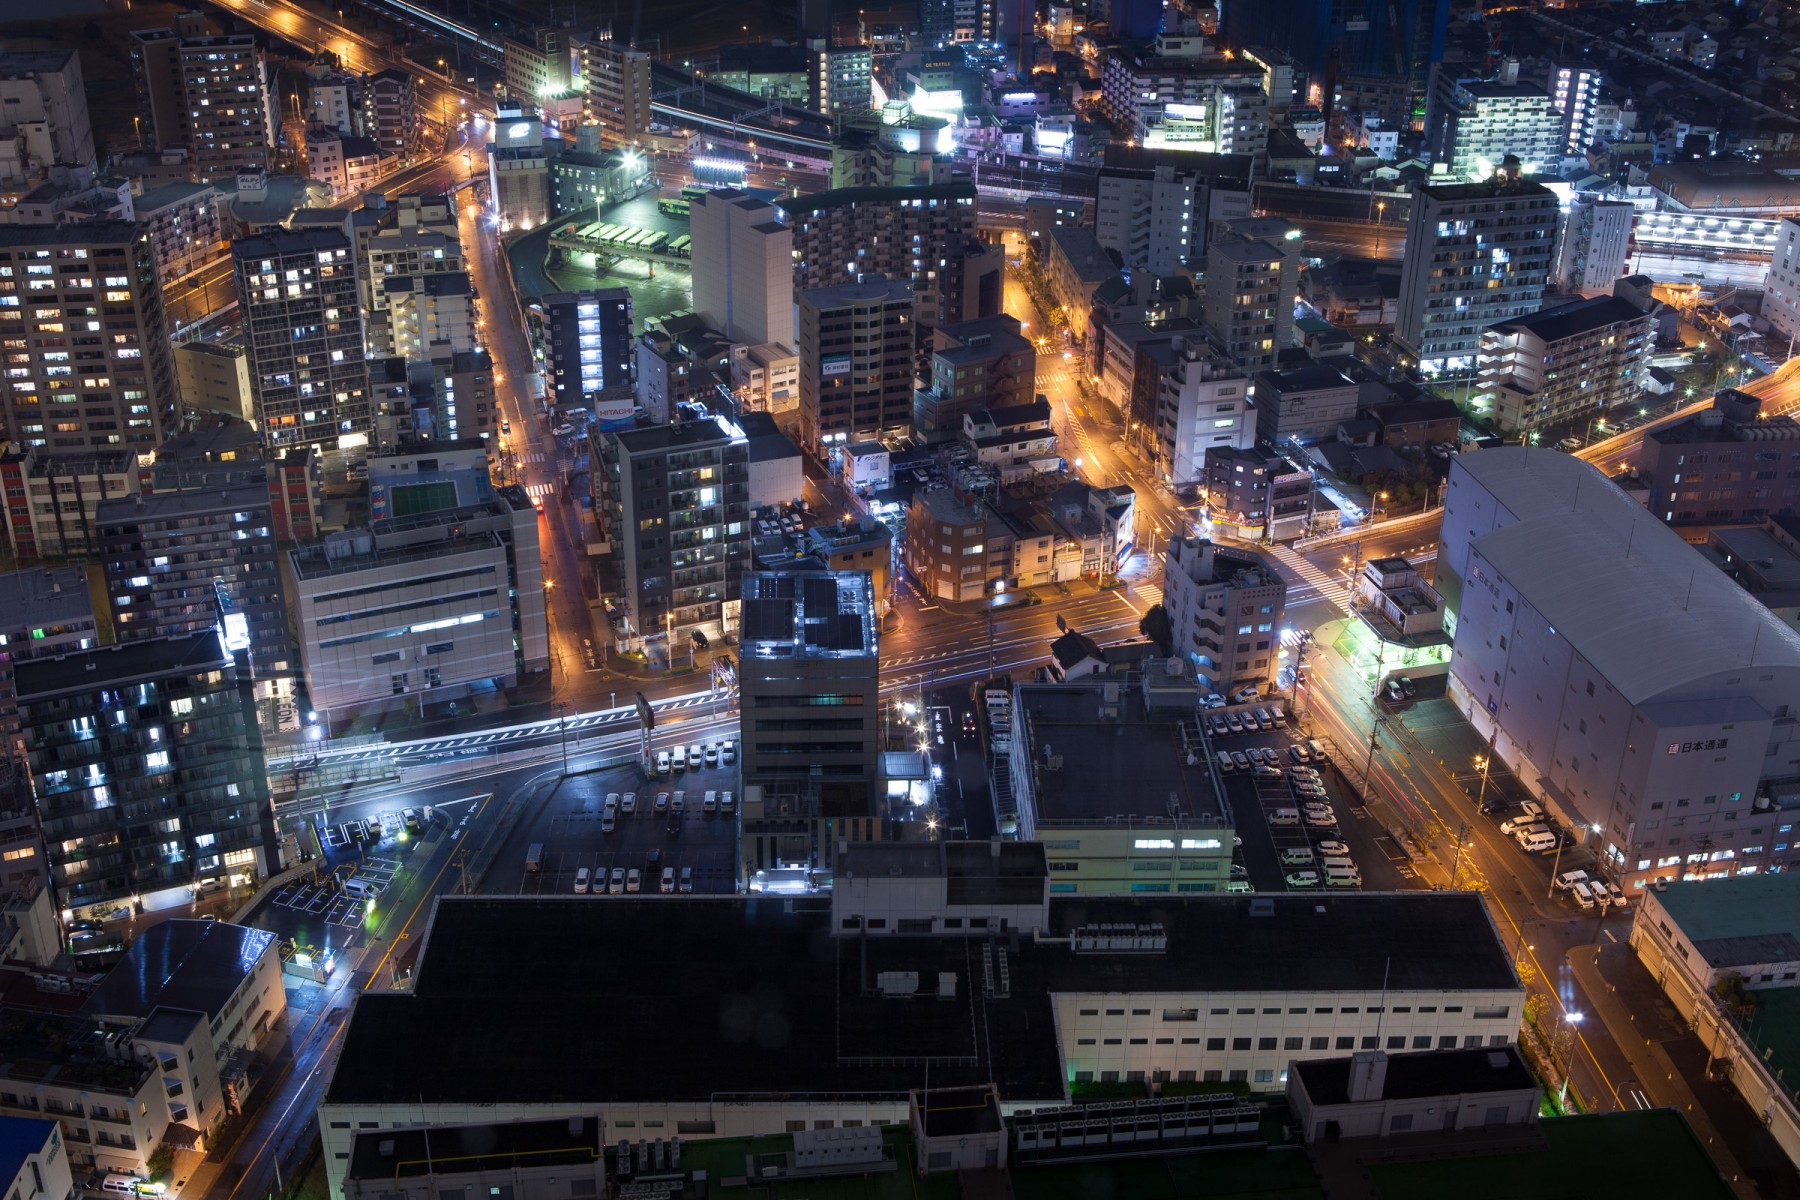 View of the streets below the Umeda Sky Building in Osaka.